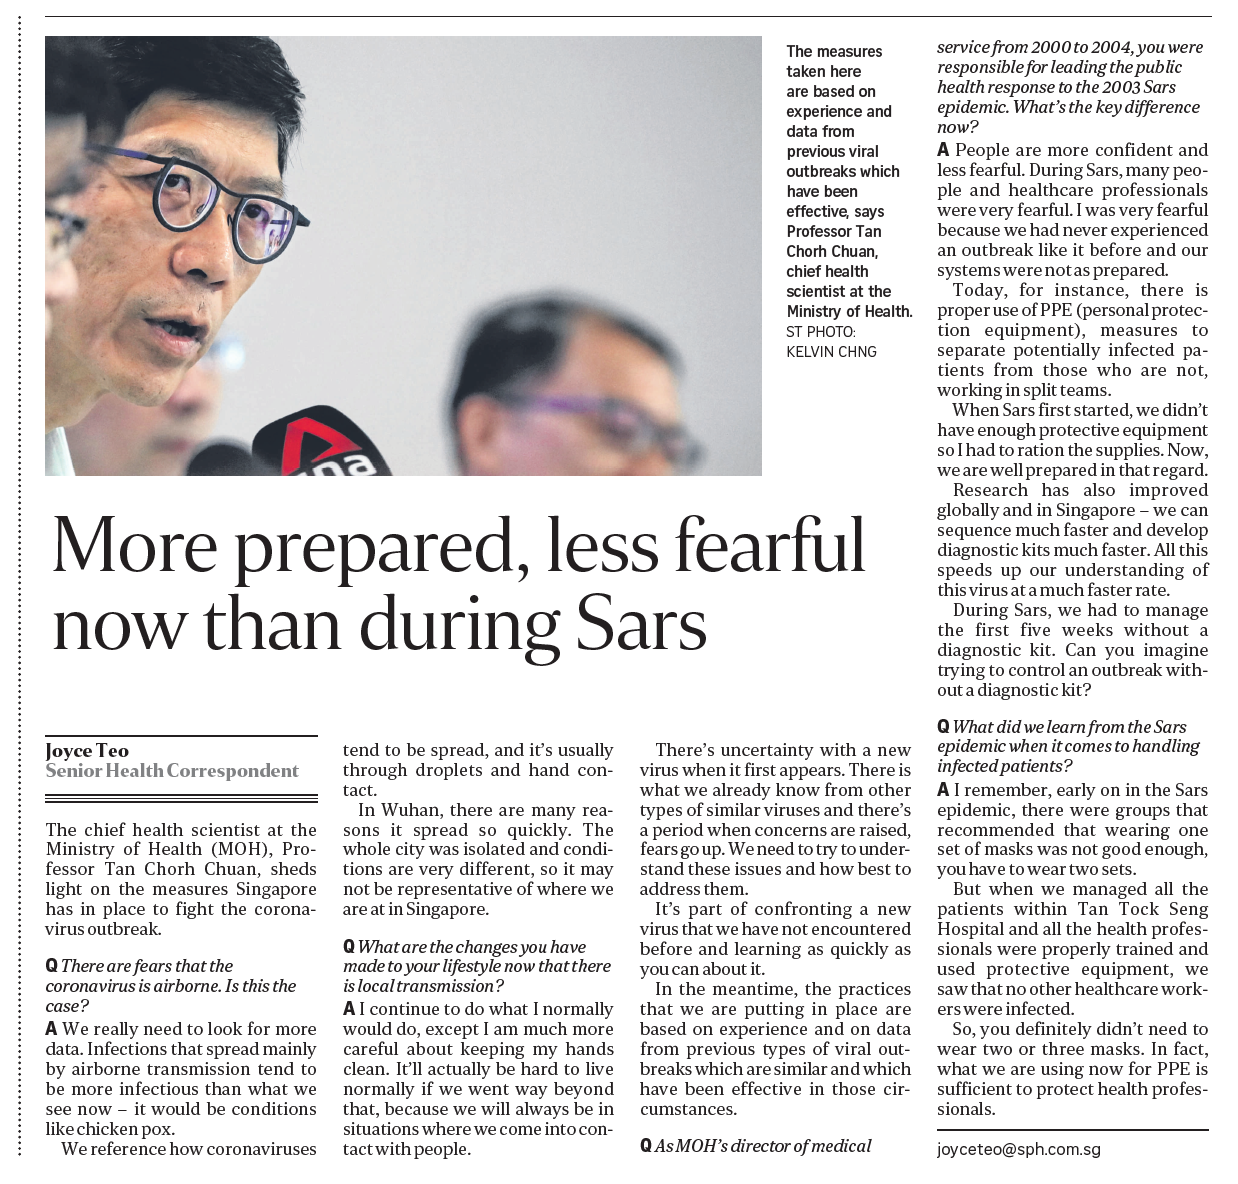 More prepared, less fearful now than during Sars (The Sunday Times, 16 Feb 2020, pB9)